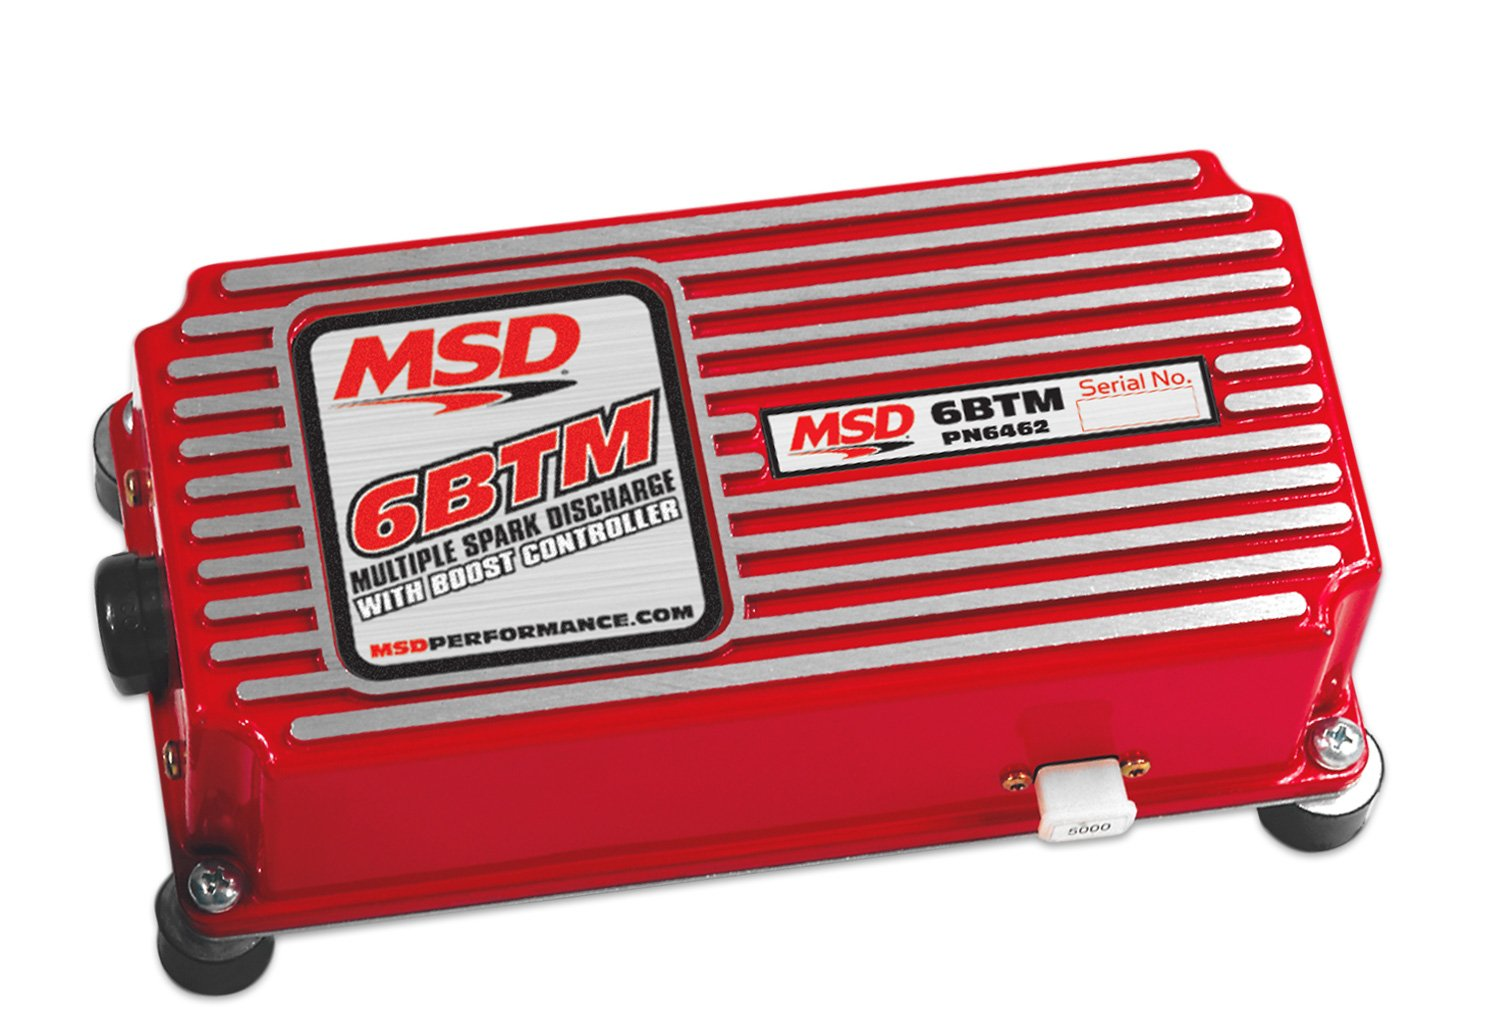 Msd Msd 6 Btm Boost Timing Master